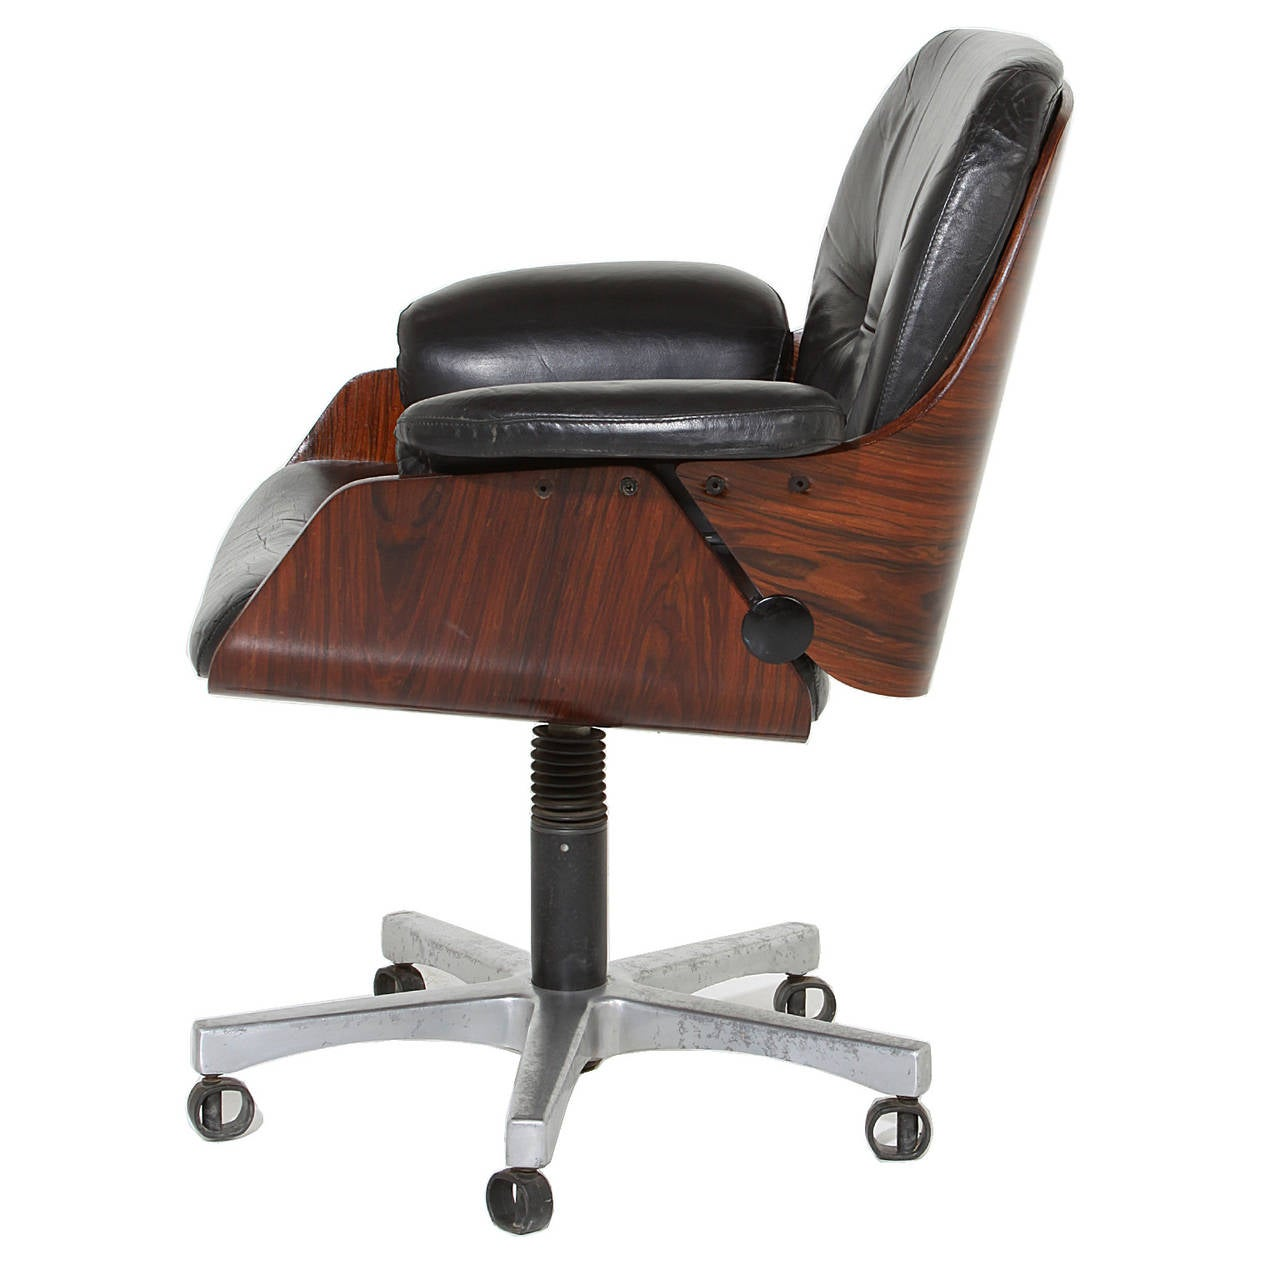 Vintage Chairs Vintage Office Chair In Rosewood And Black Leather At 1stdibs